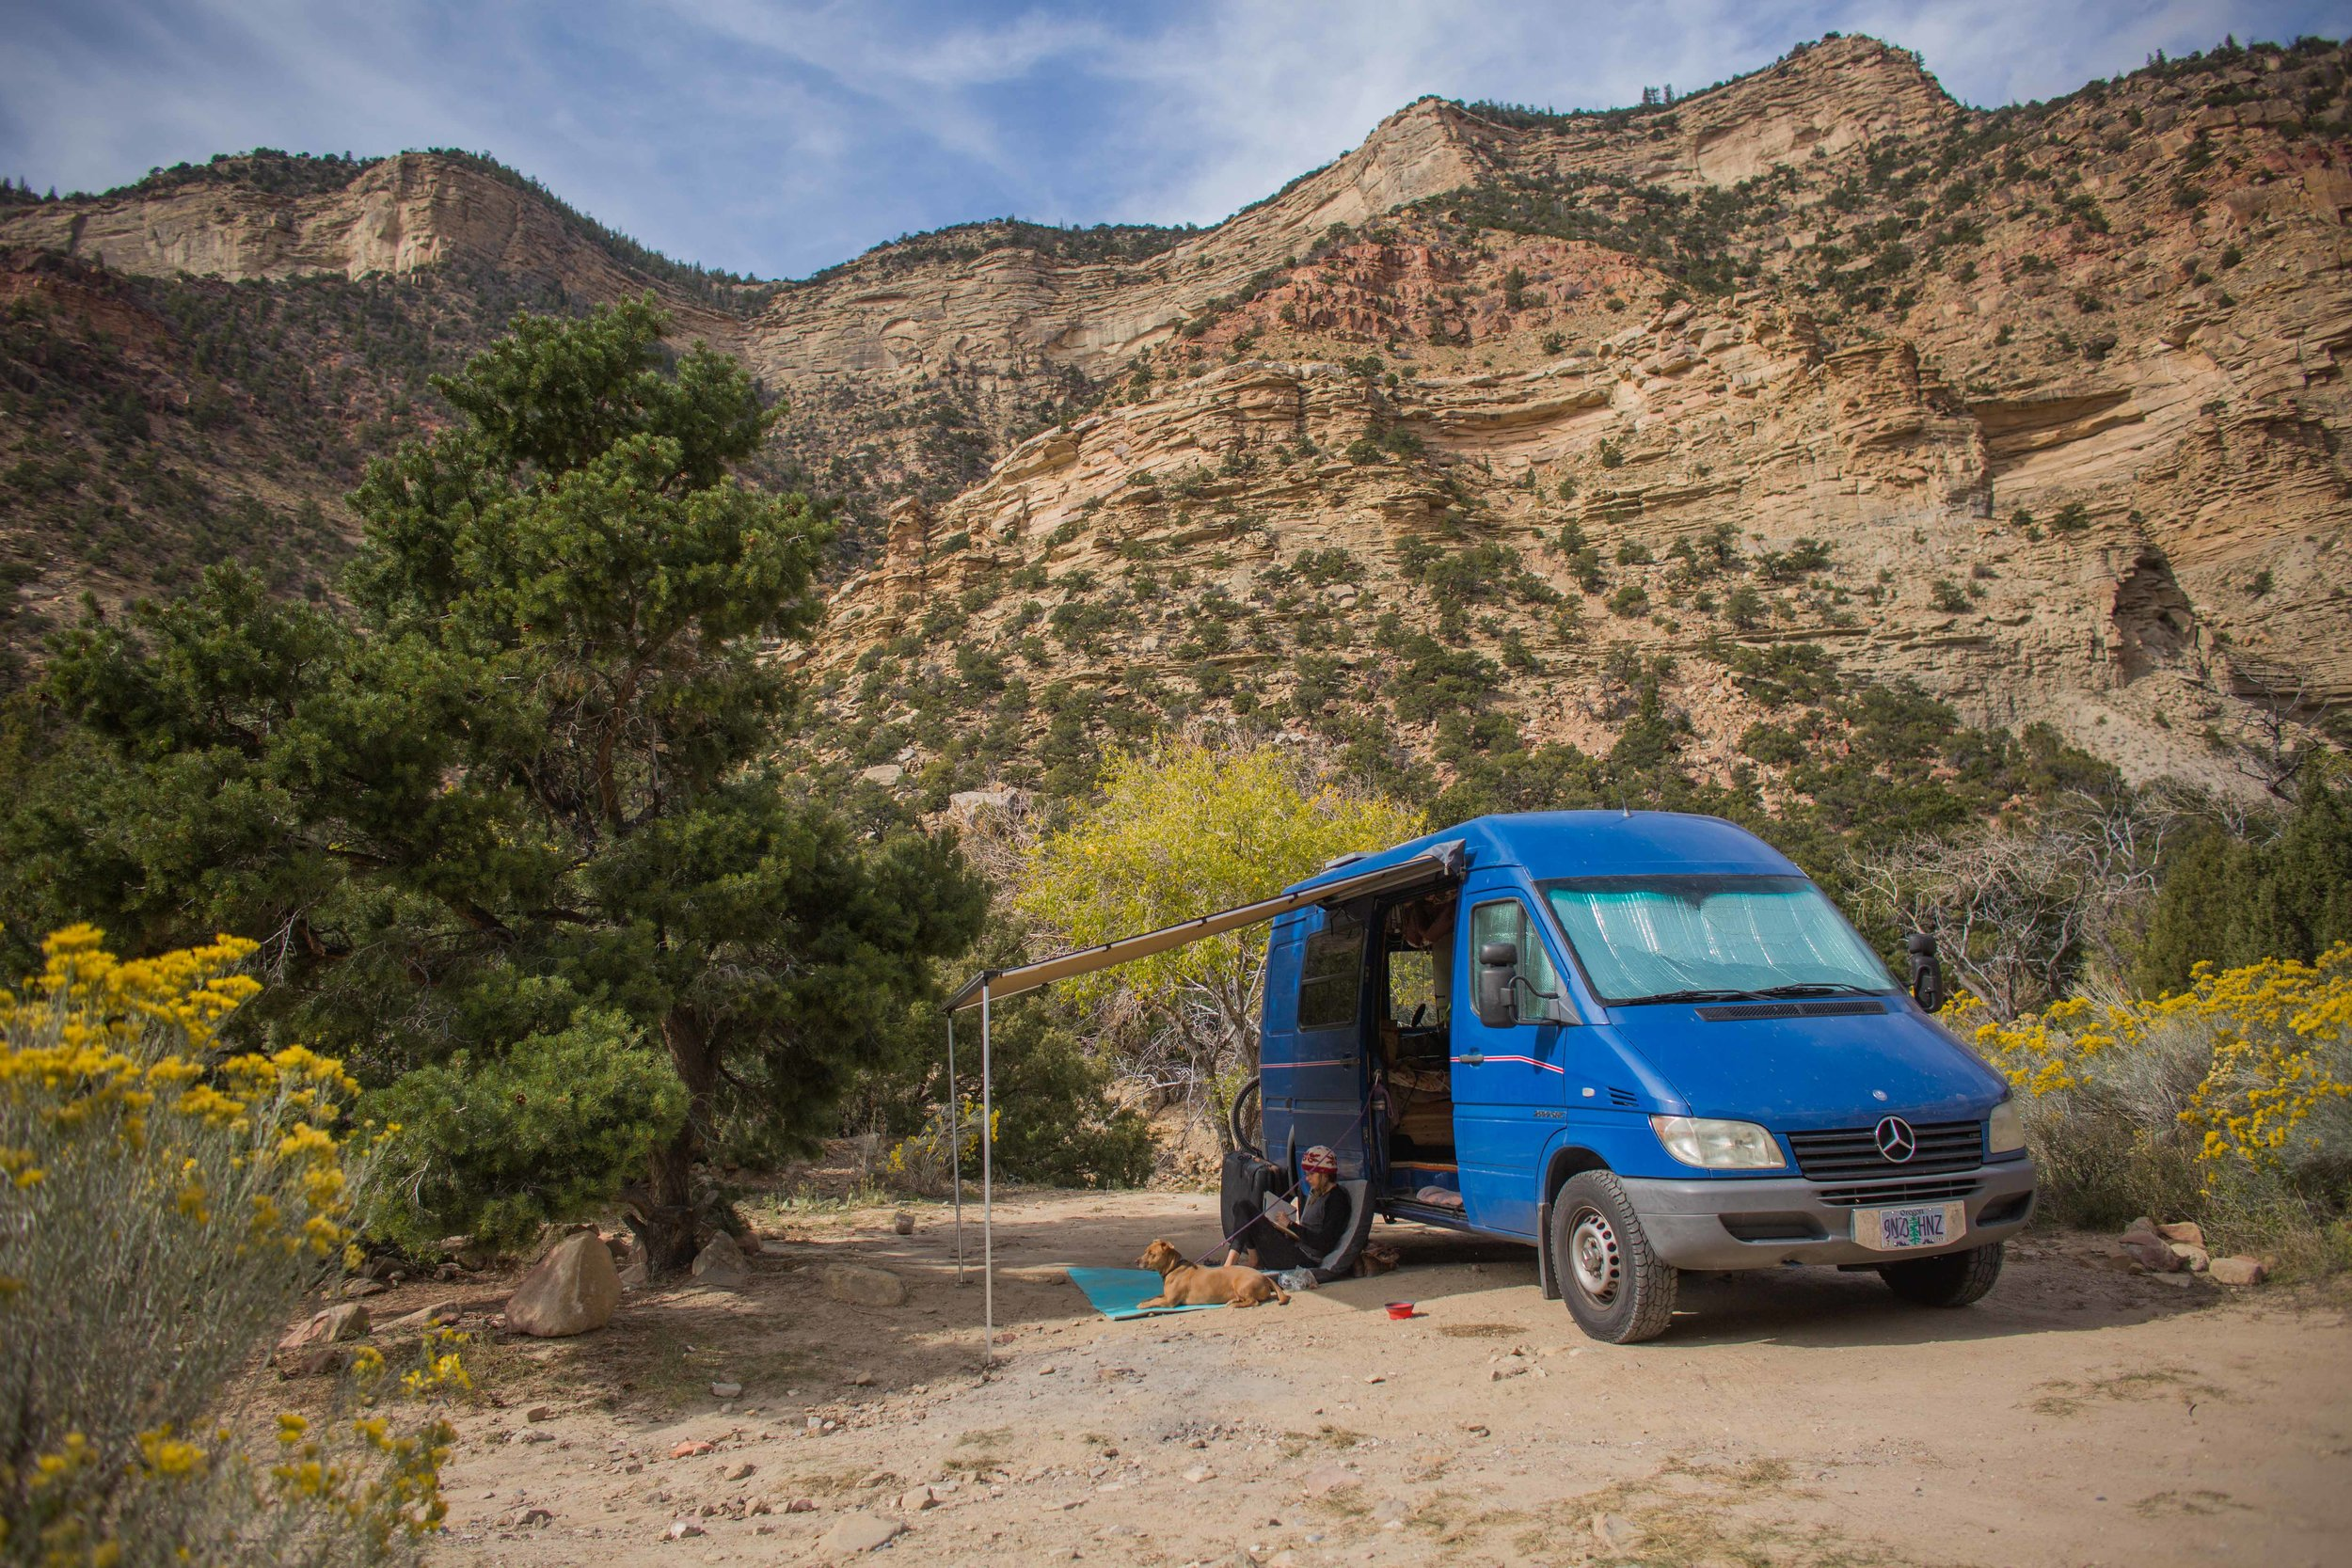 Enjoying the shade of the Arb awning. You can also see the window coverings. Taken in Joe's Valley, Utah